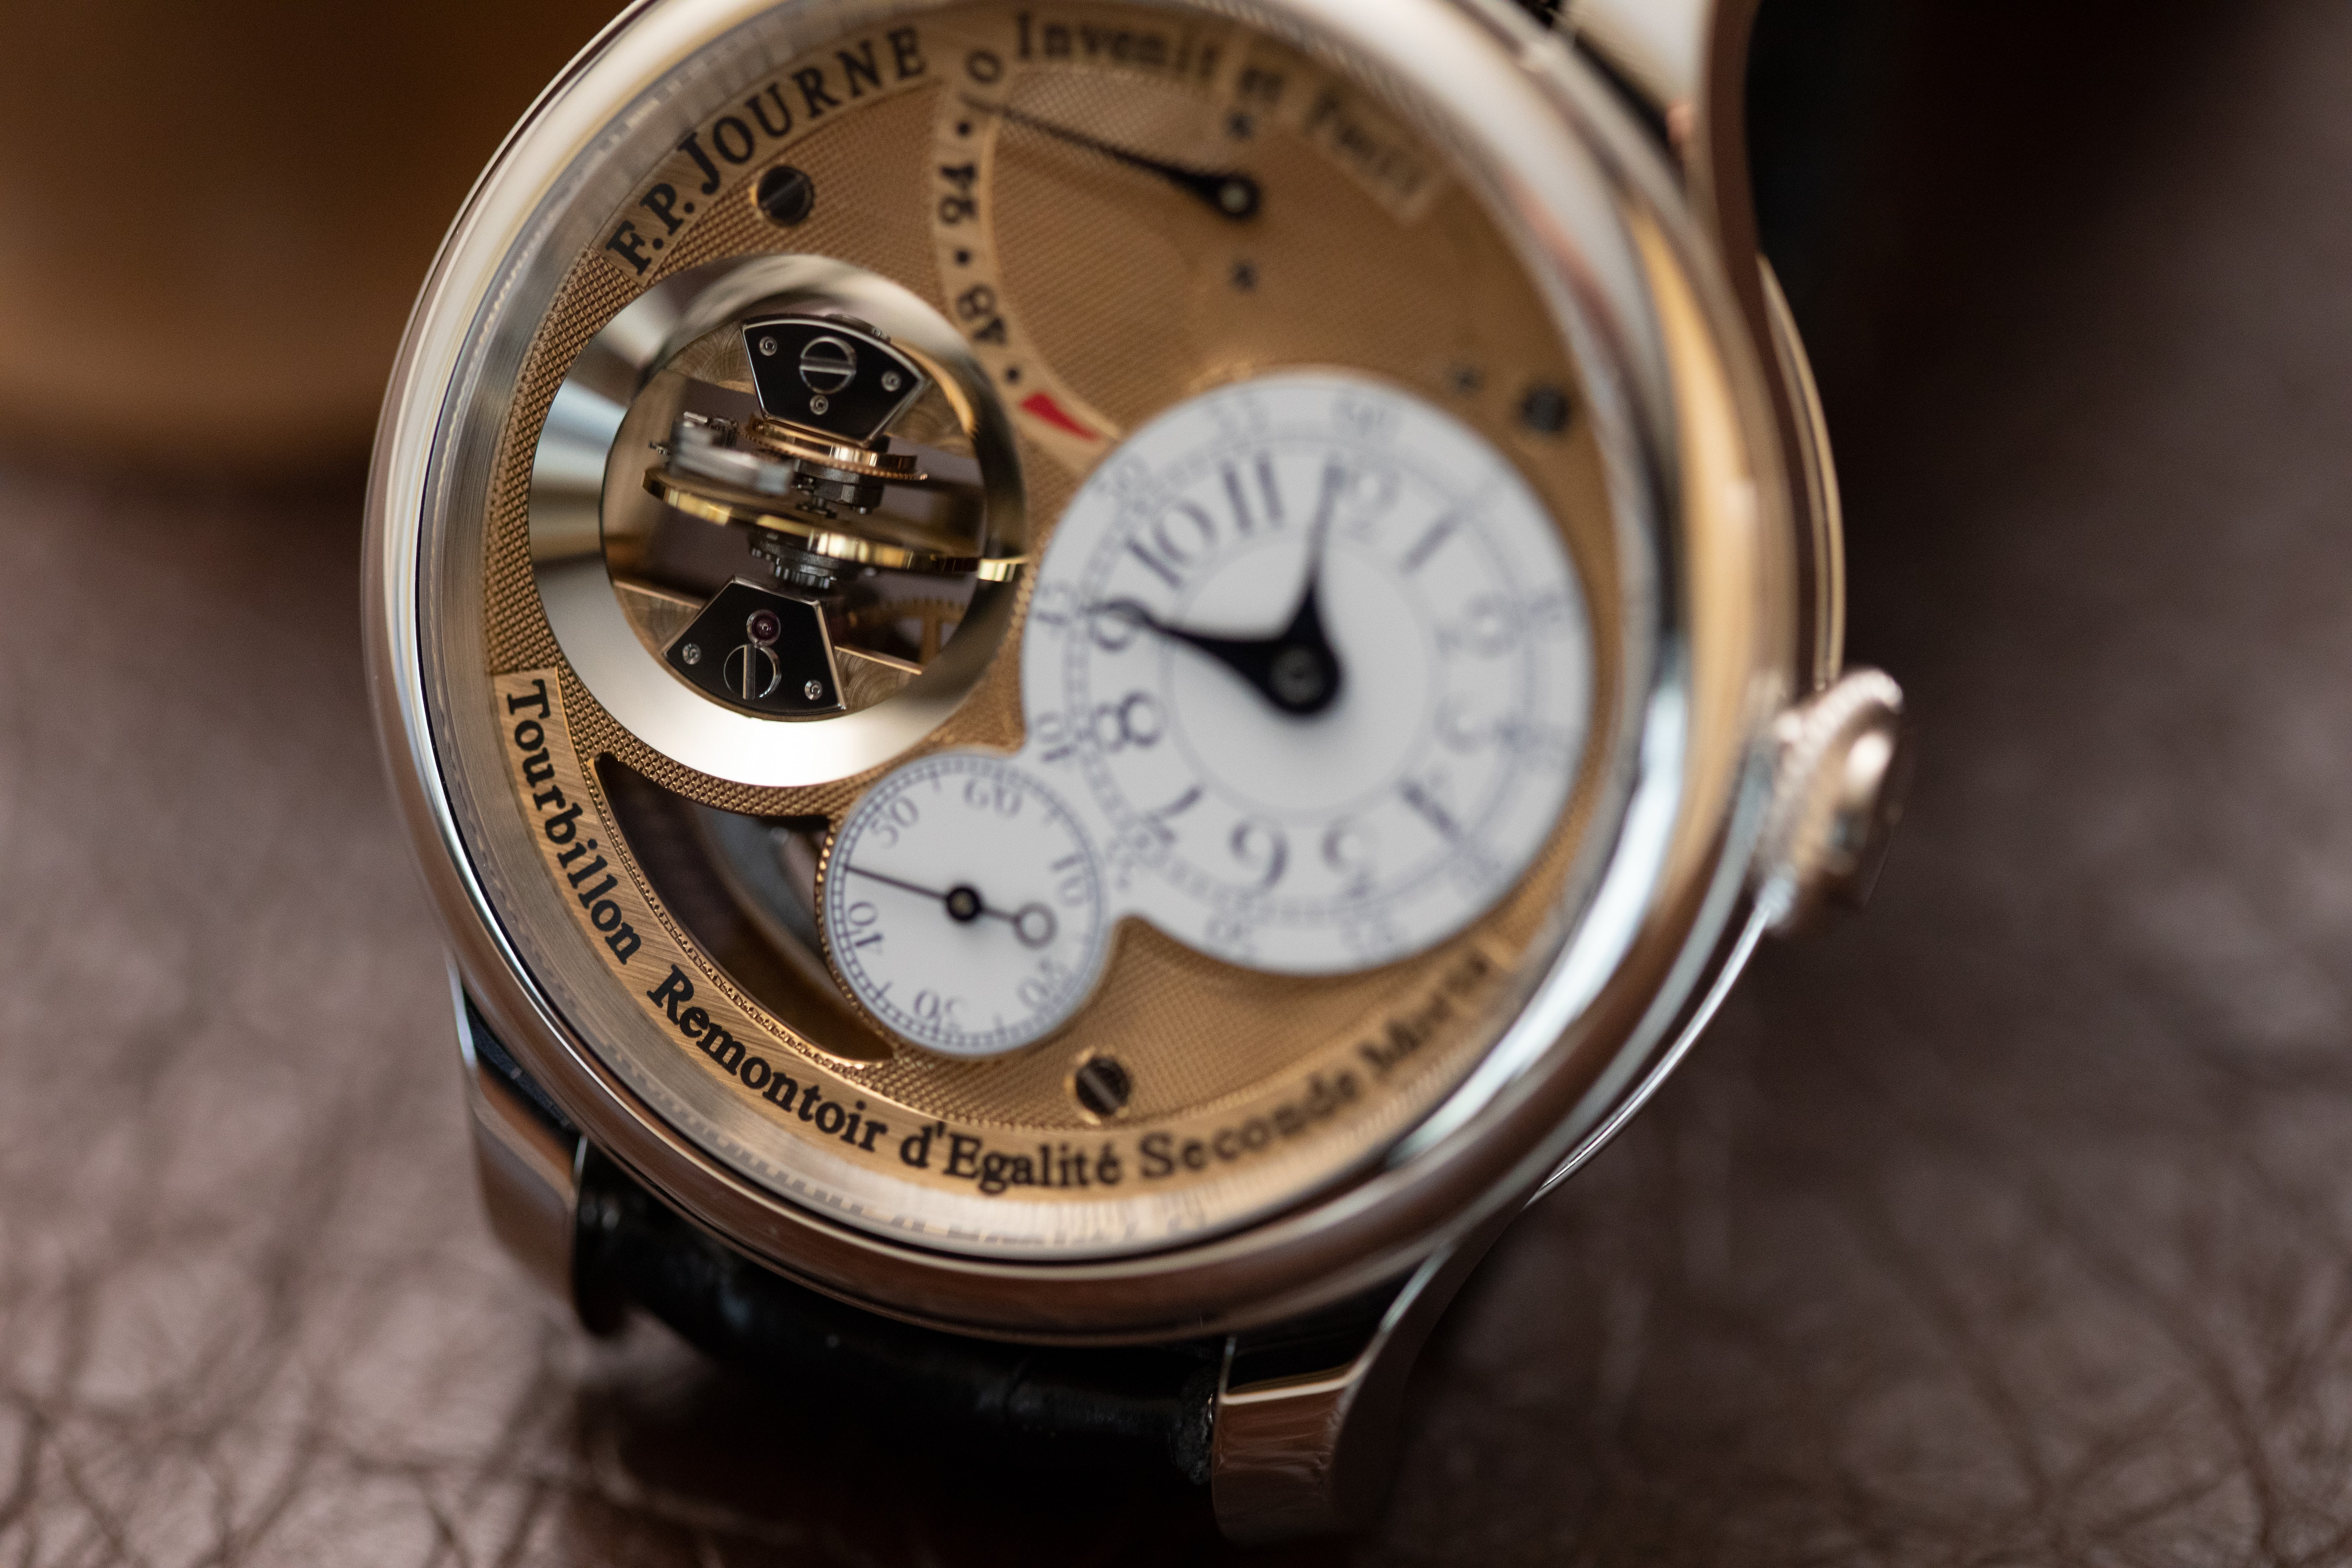 F. P. Journe Tourbillon Souverain Vertical